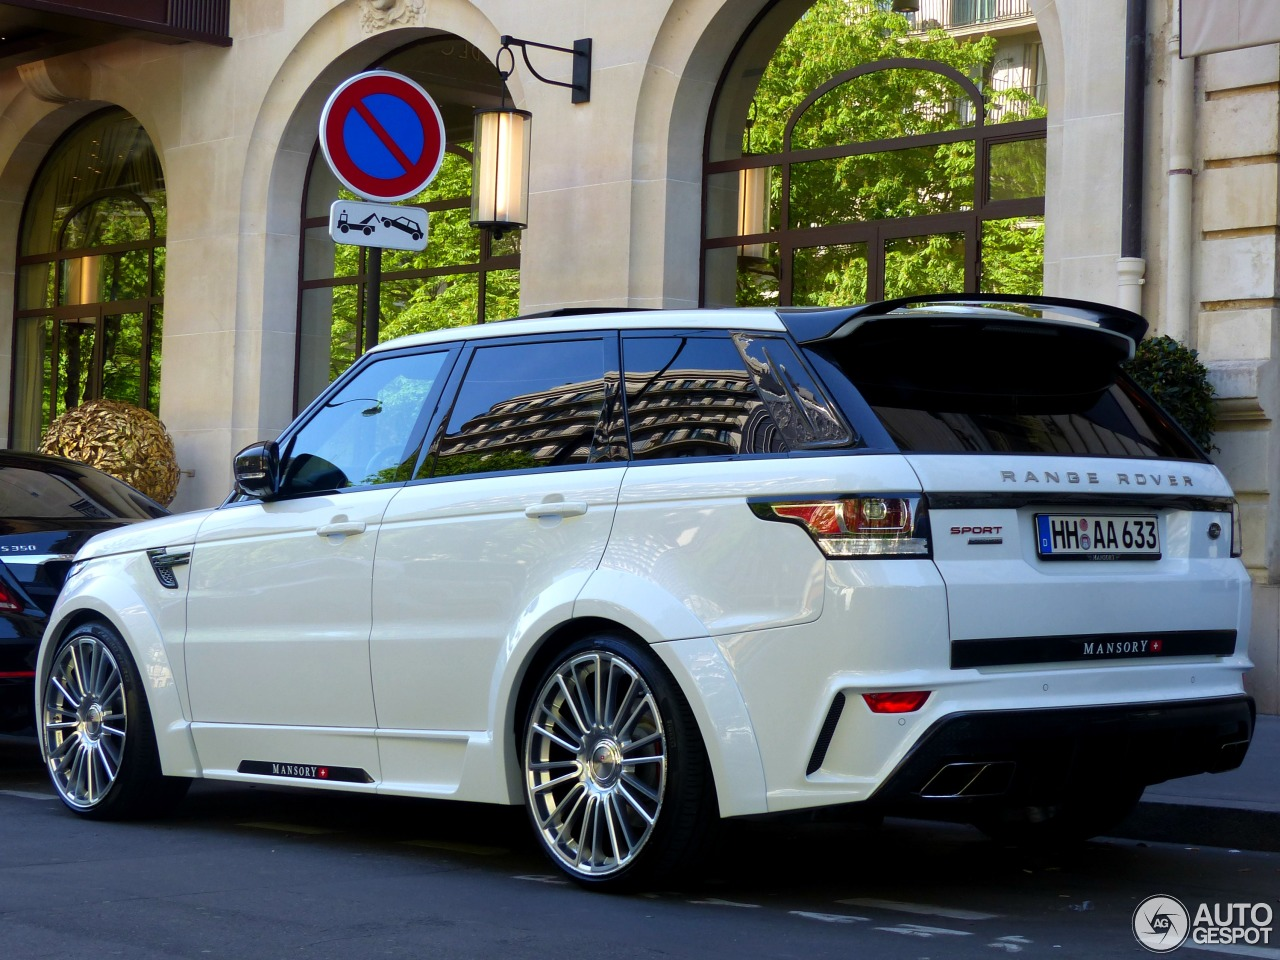 land rover mansory range rover sport 2013 15 april 2015 autogespot. Black Bedroom Furniture Sets. Home Design Ideas